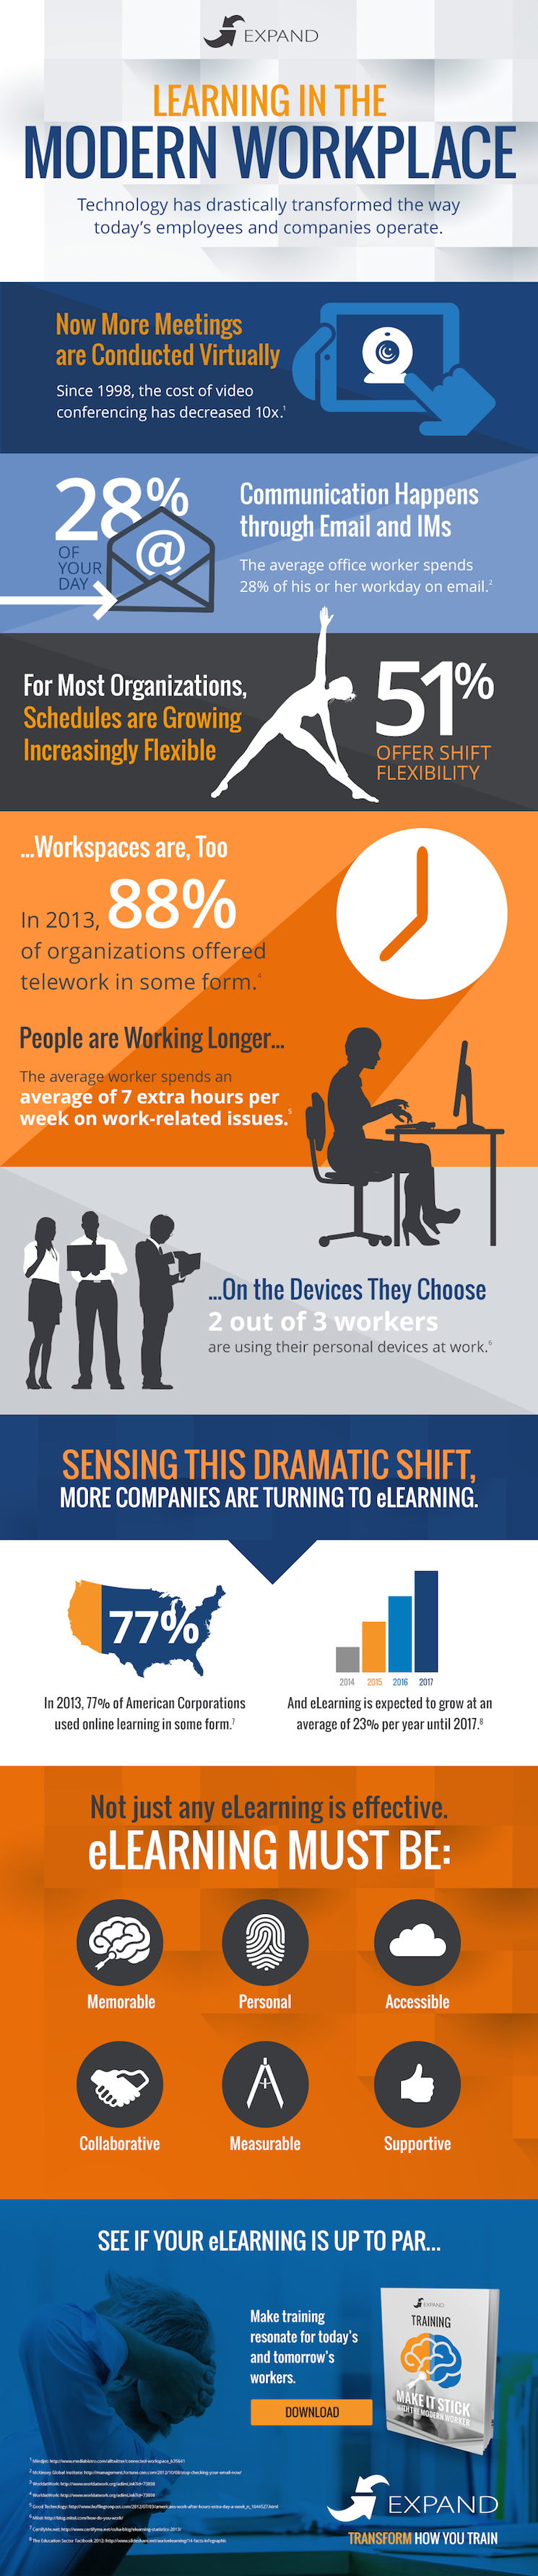 infographic-learning-in-the-modern-workplace.jpg